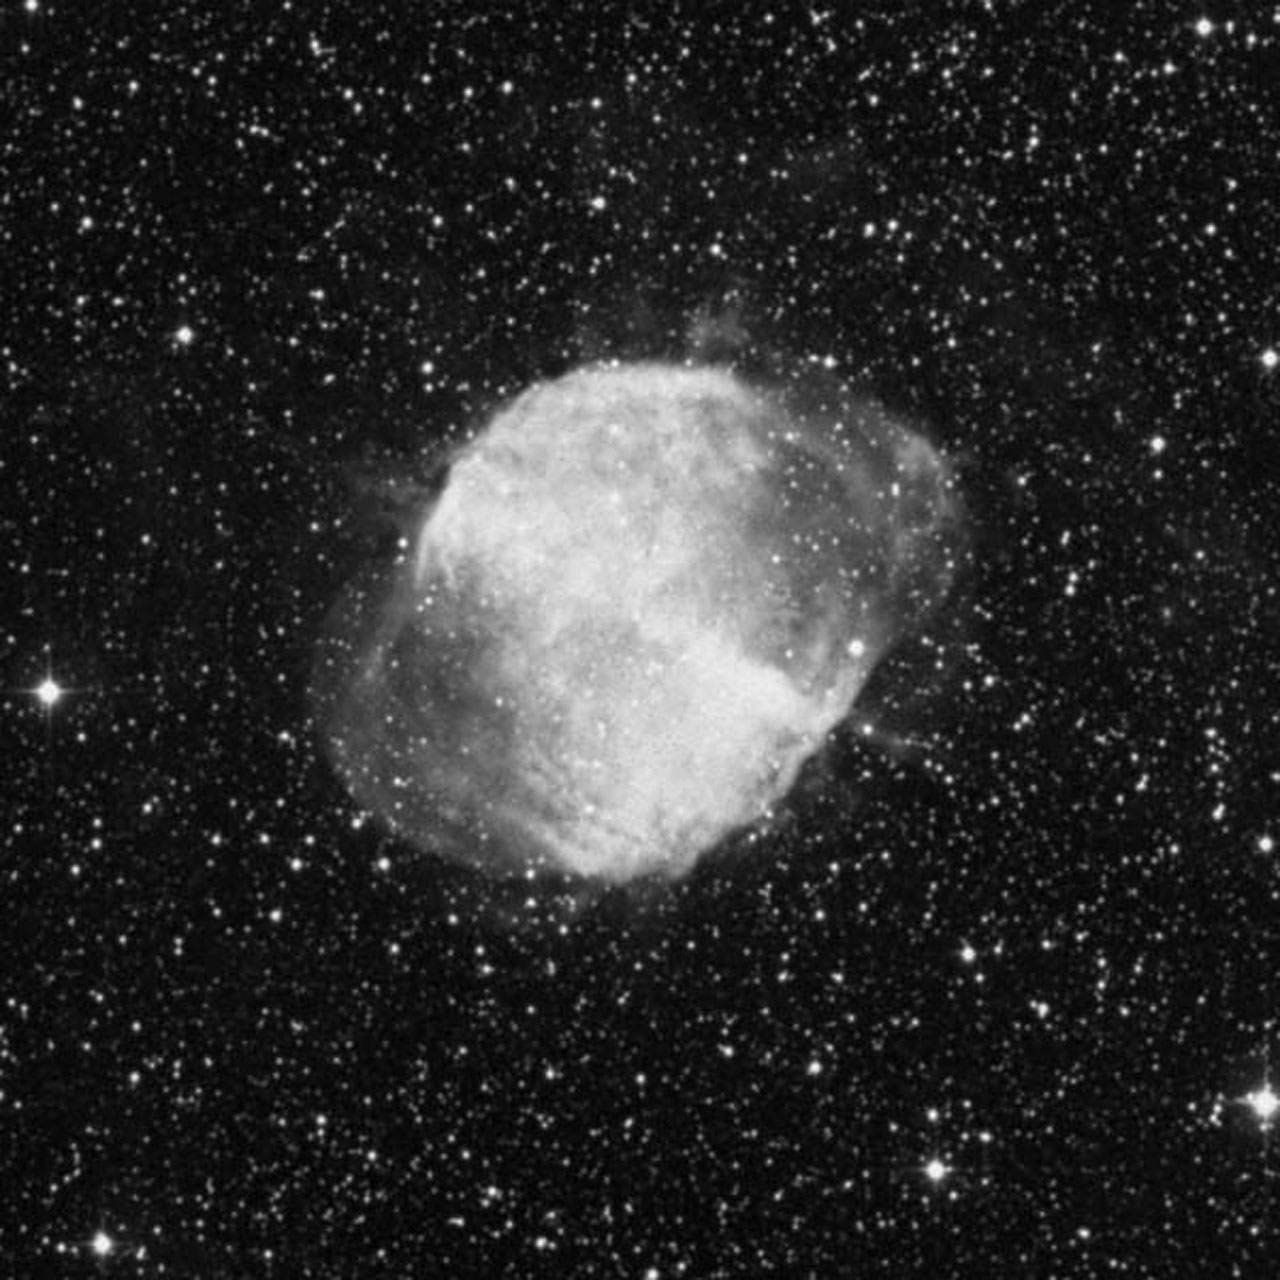 DSS Image of Dumbbell Nebula (ground-based image)